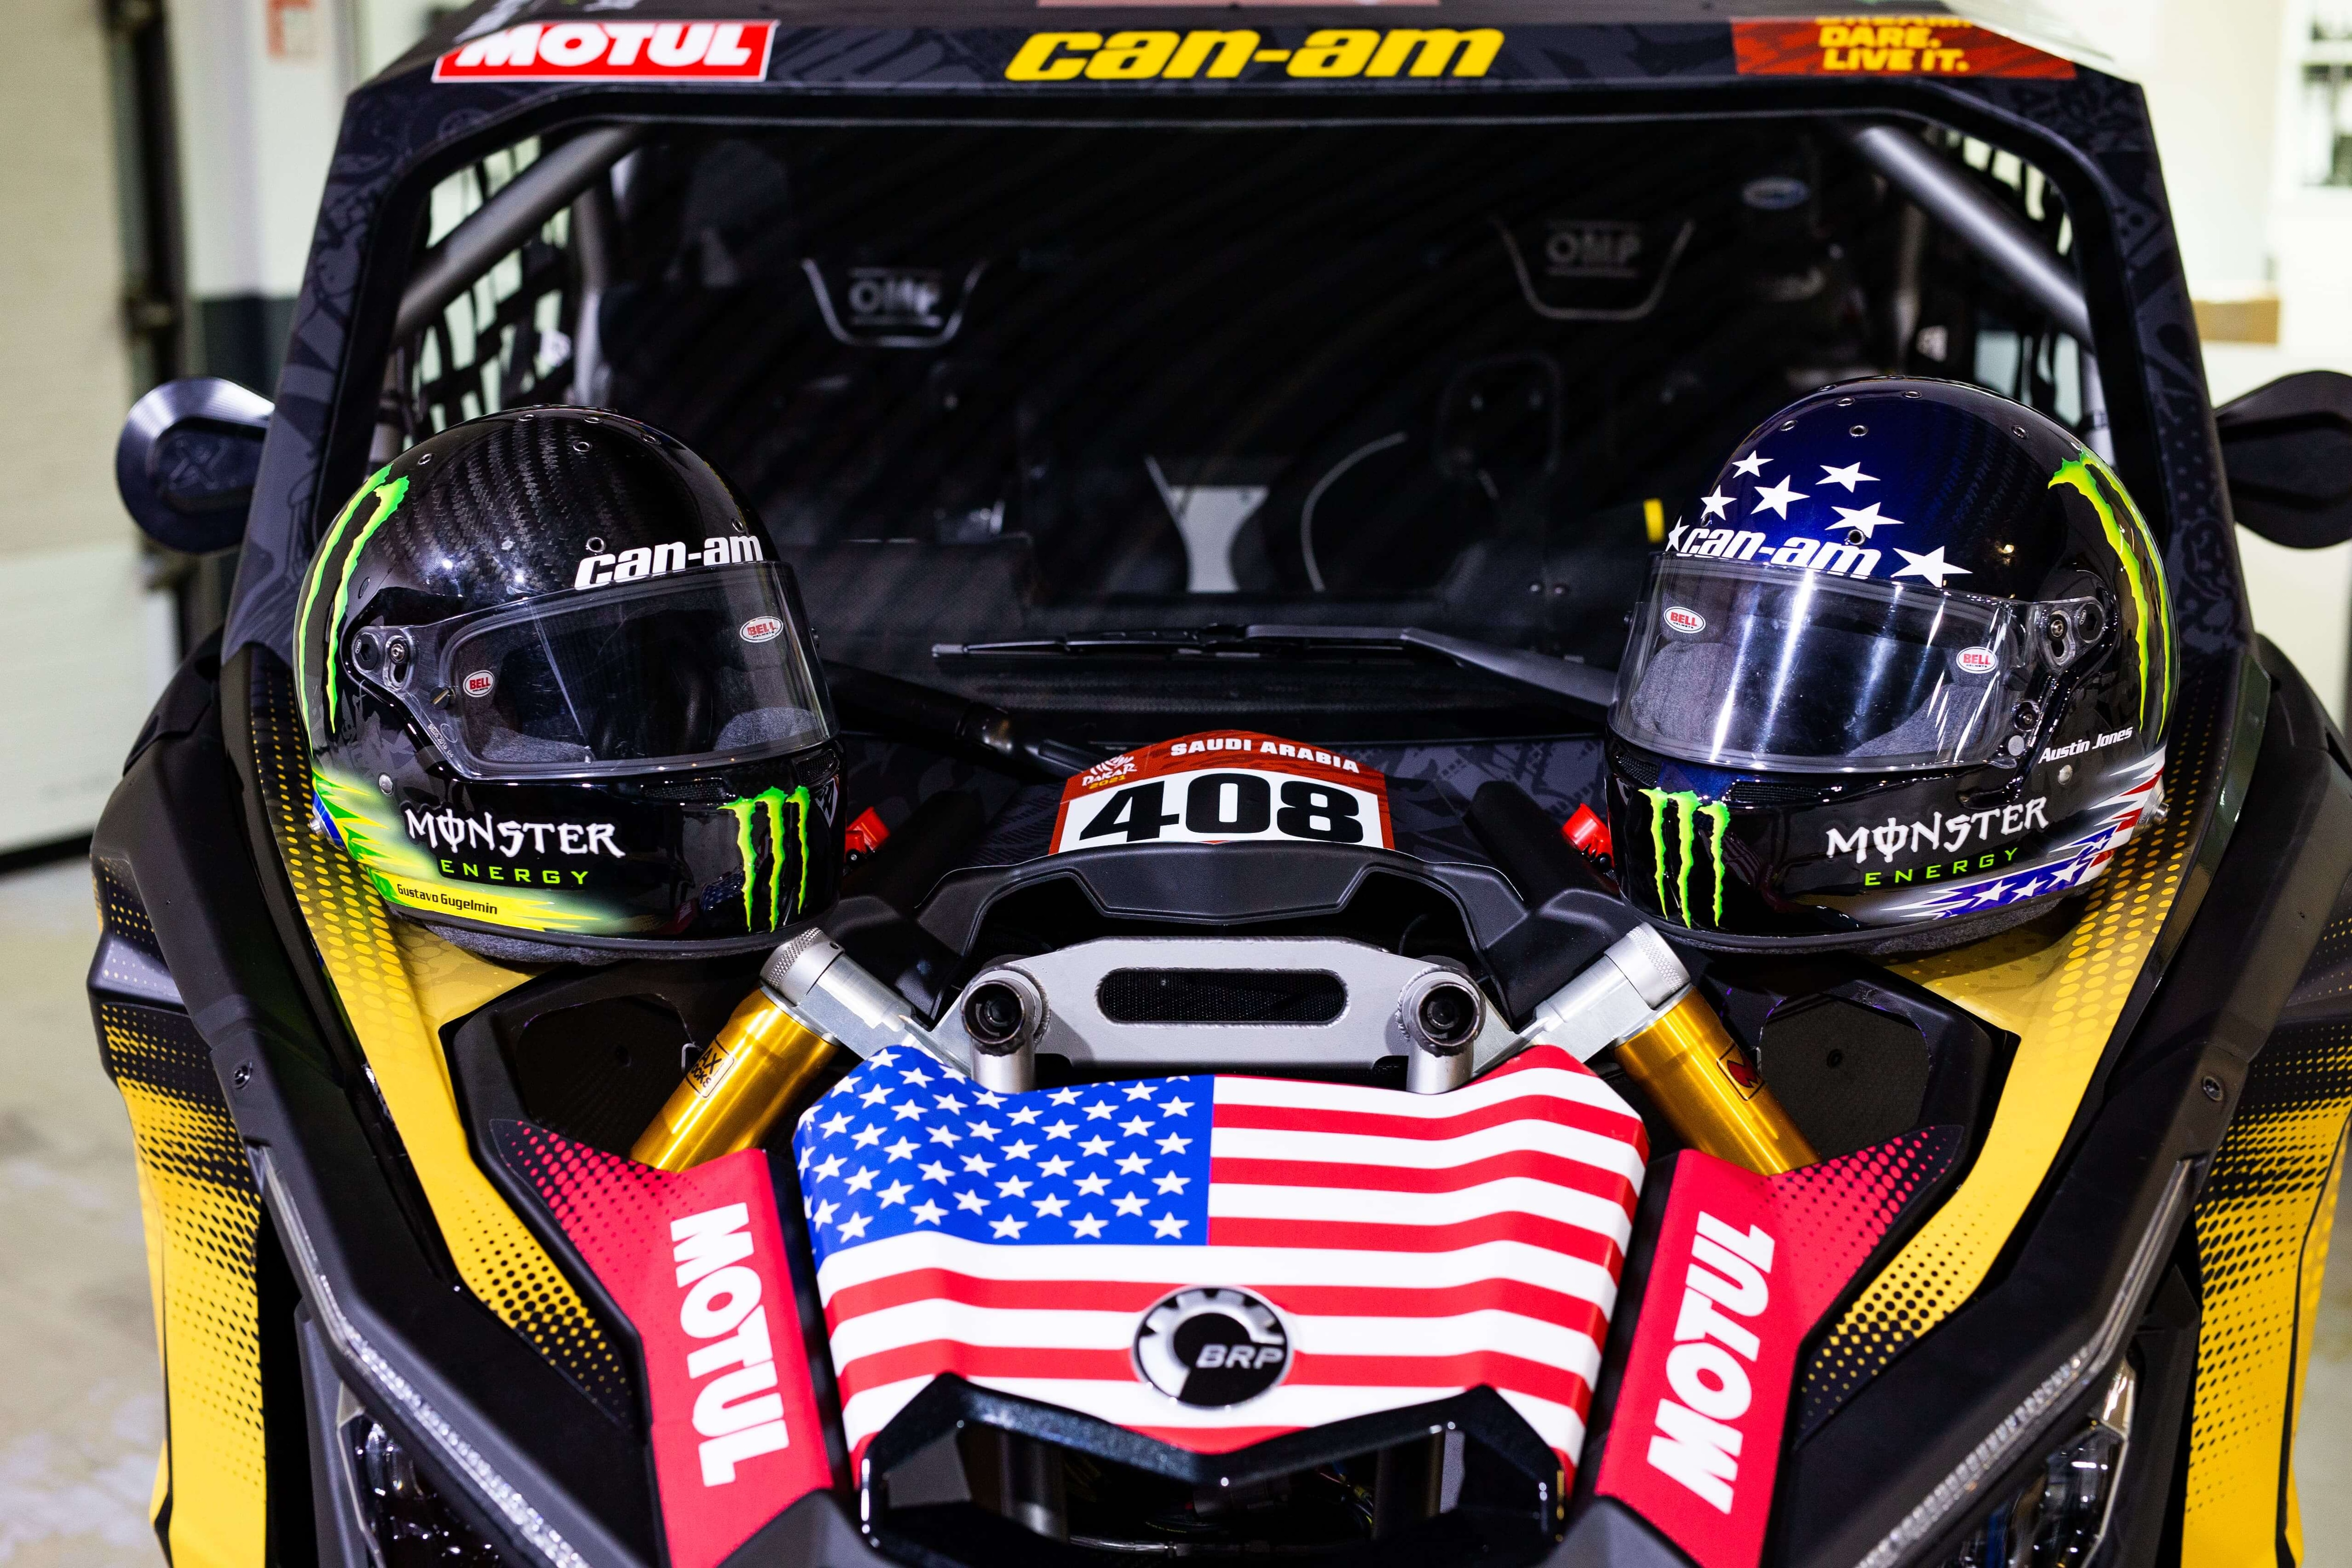 Two Can-Am helmets on the official Can-Am Maverick X3 for Dakar Rally